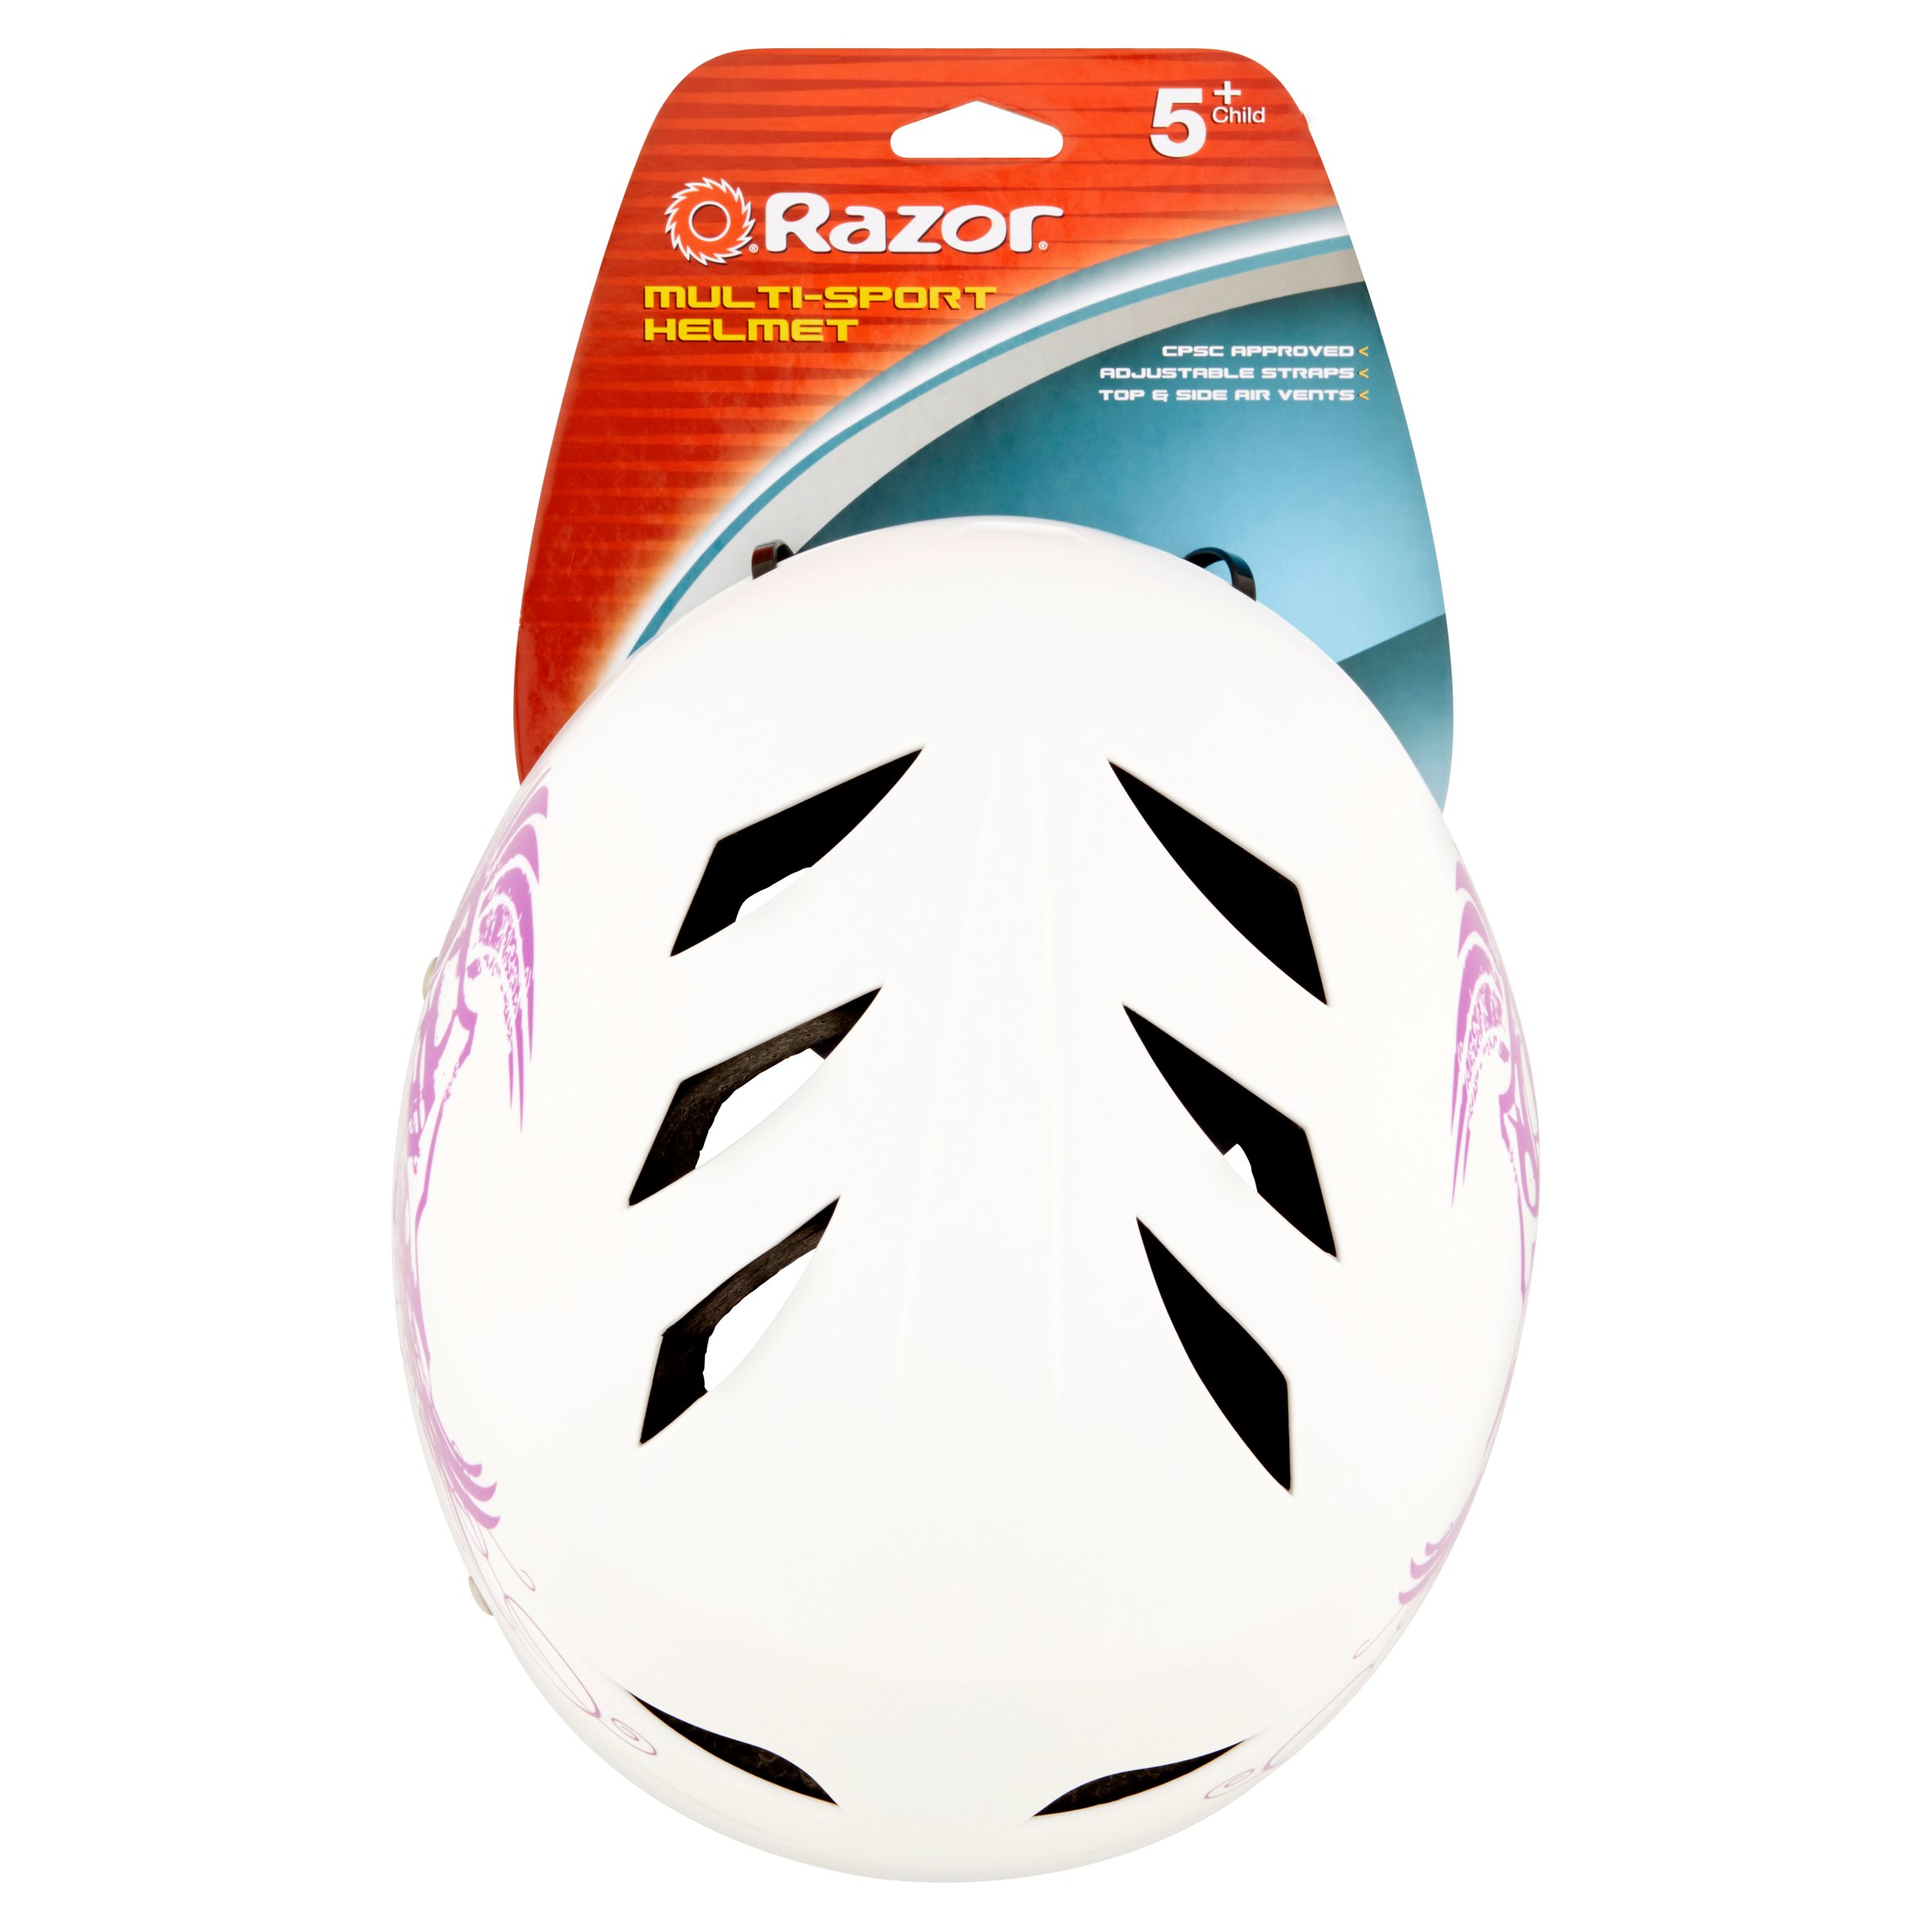 Razor Multi-Sport Helmet 5+ Child